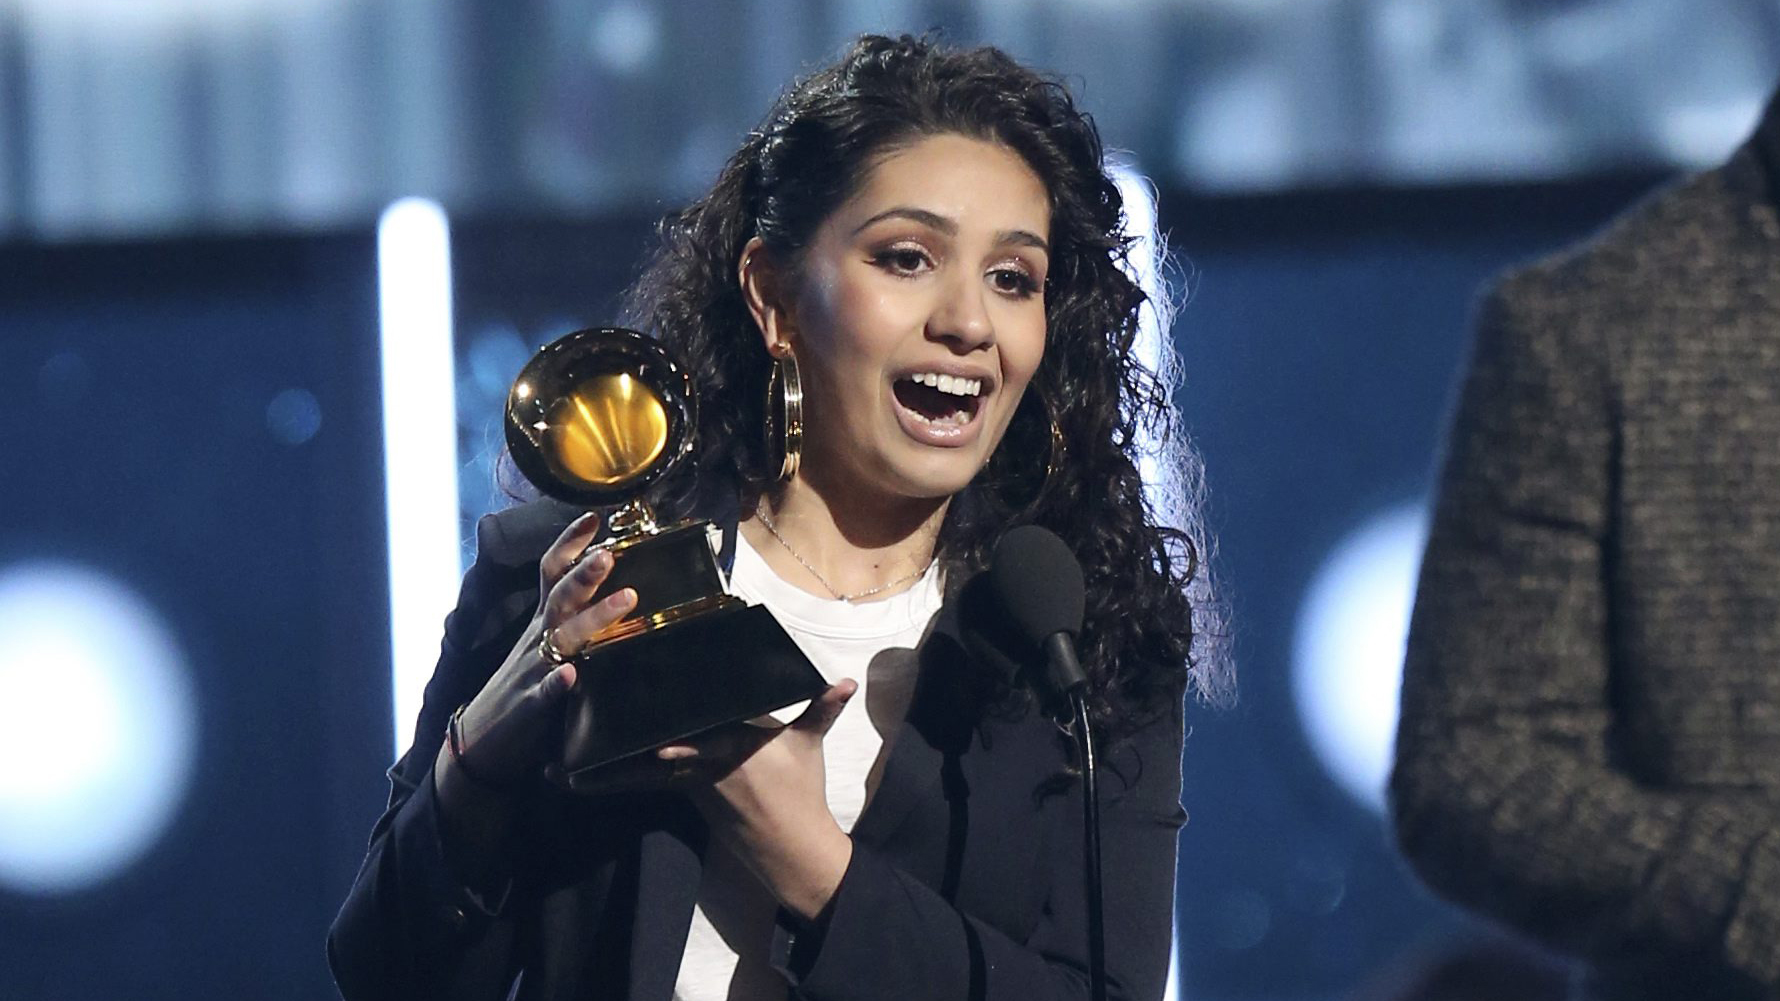 Image result for Alessia Cara grammy